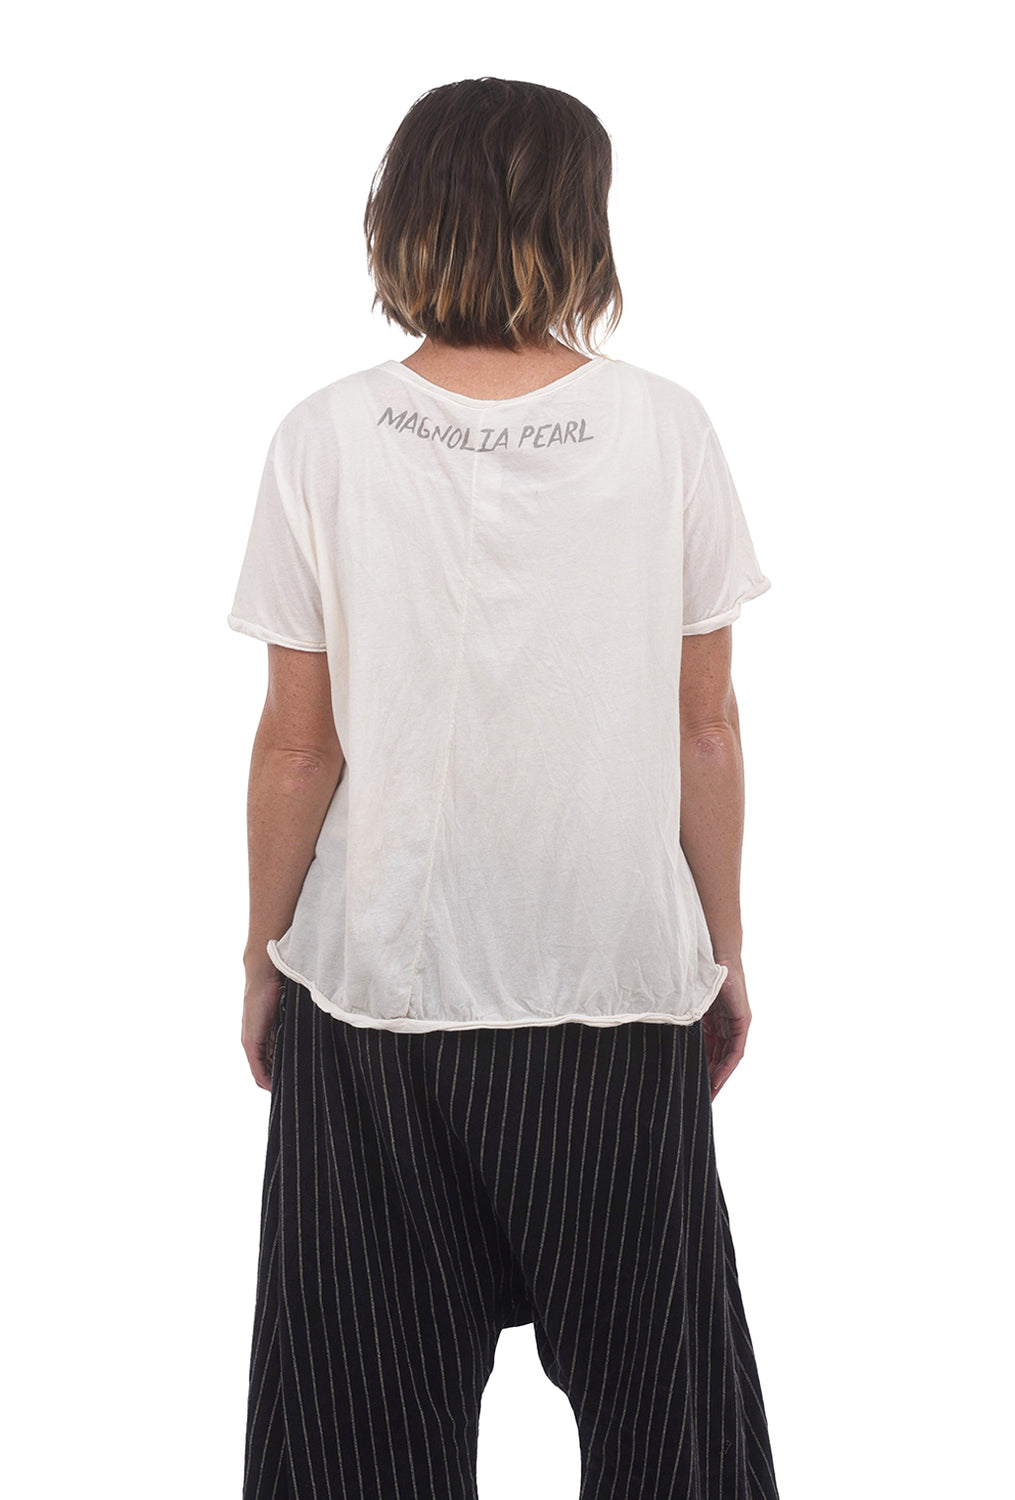 Magnolia Pearl MP Amoret Tee, True Off-White One Size Off-White